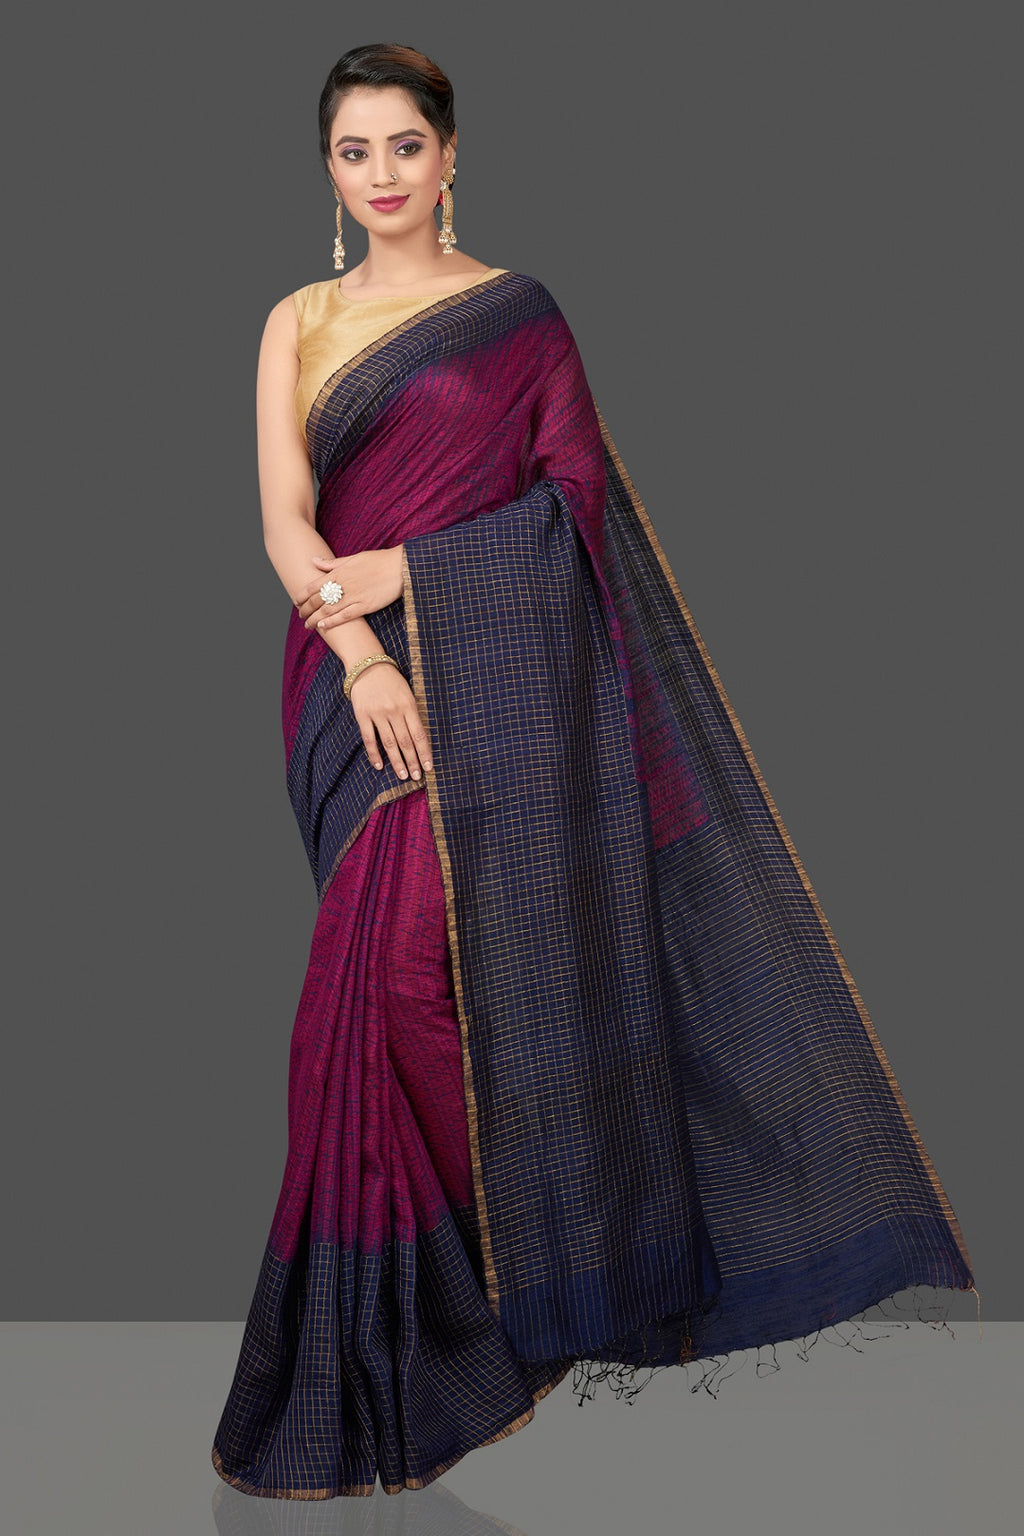 Buy elegant blue and pink matka shibori saree online in USA with check zari border. Flaunt Indian fashion in USA with a stunning collection of handwoven sarees, cotton sarees, pure silk sarees, printed saris in USA from Pure Elegance Indian saree store in USA.-full view